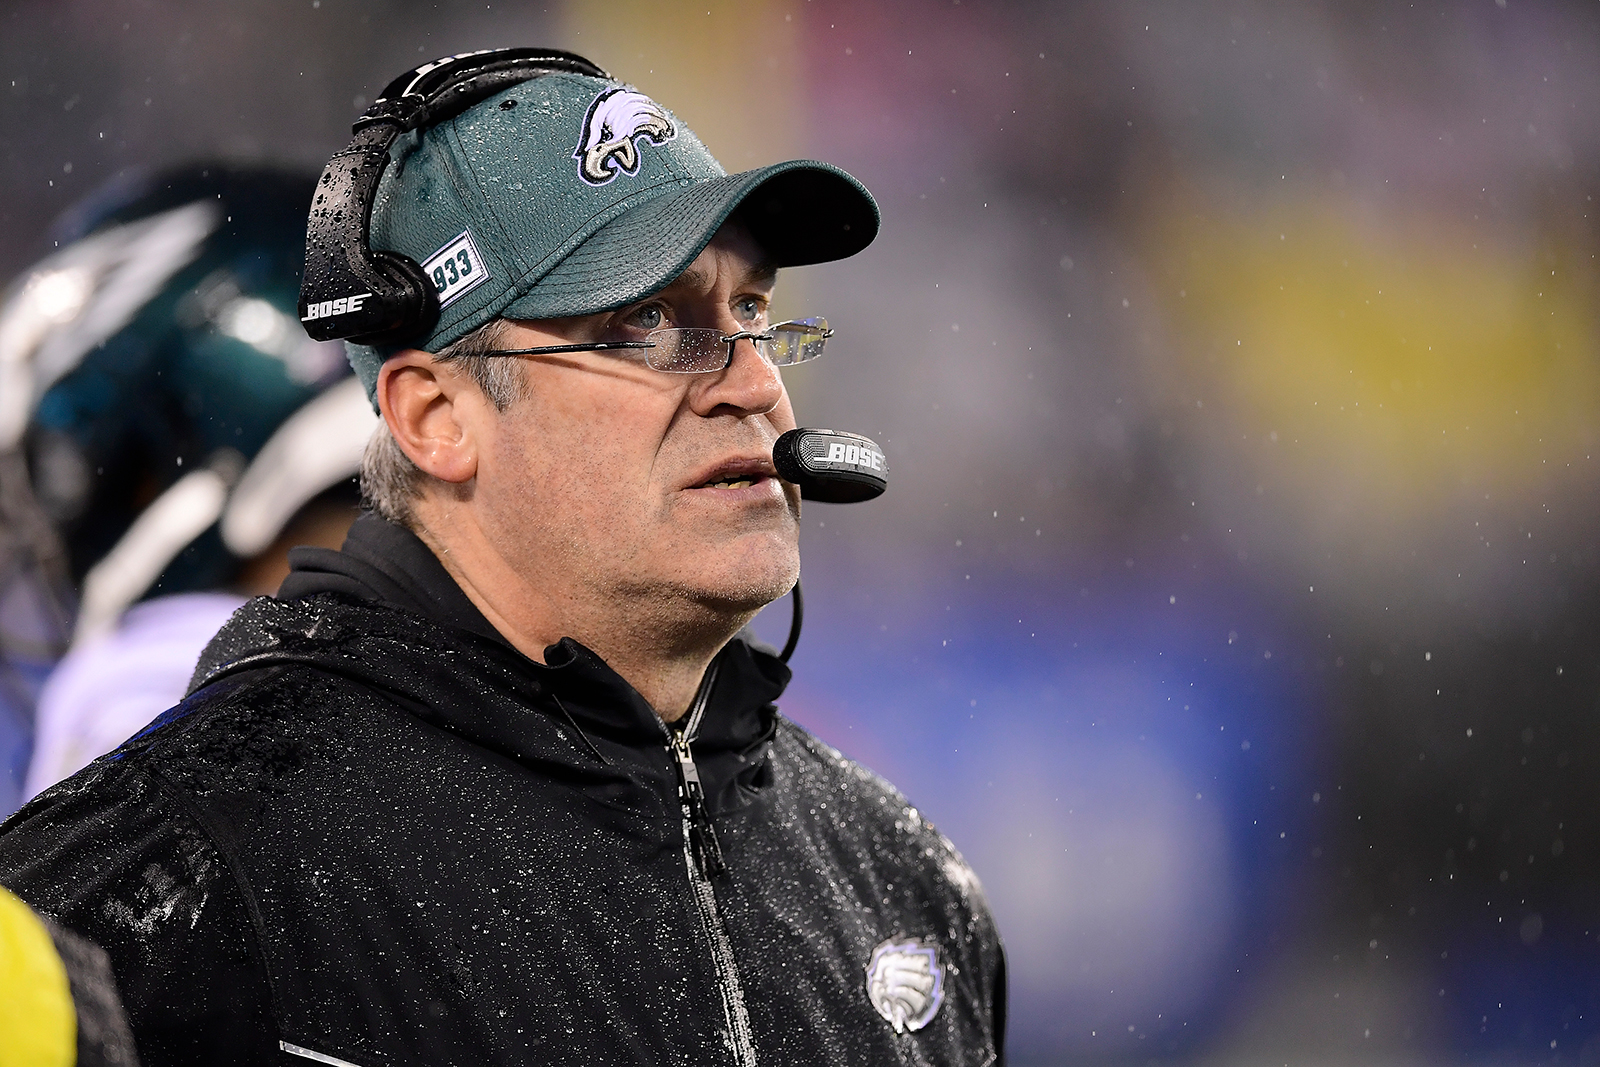 Head coach Doug Pederson of the Philadelphia Eagles looks on against the New York Giants at MetLife Stadium in East Rutherford, New Jersey on December 29, 2019.